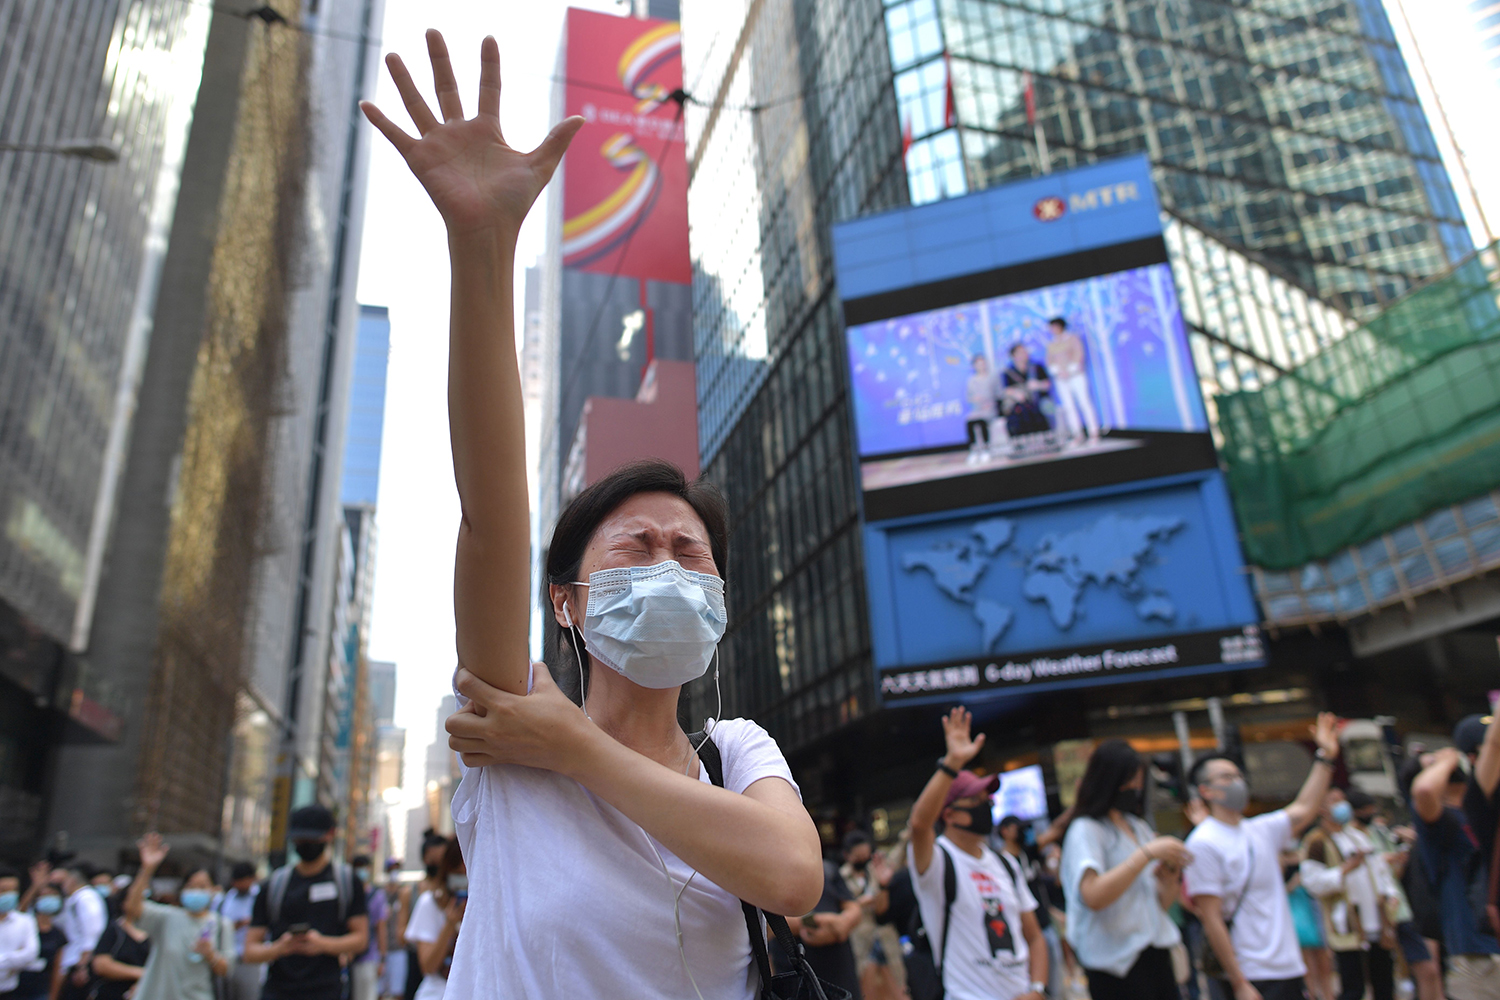 People take part in a march against a potential government ban on protesters wearing face masks in Hong Kong on Oct. 4. NICOLAS ASFOURI/AFP via Getty Images